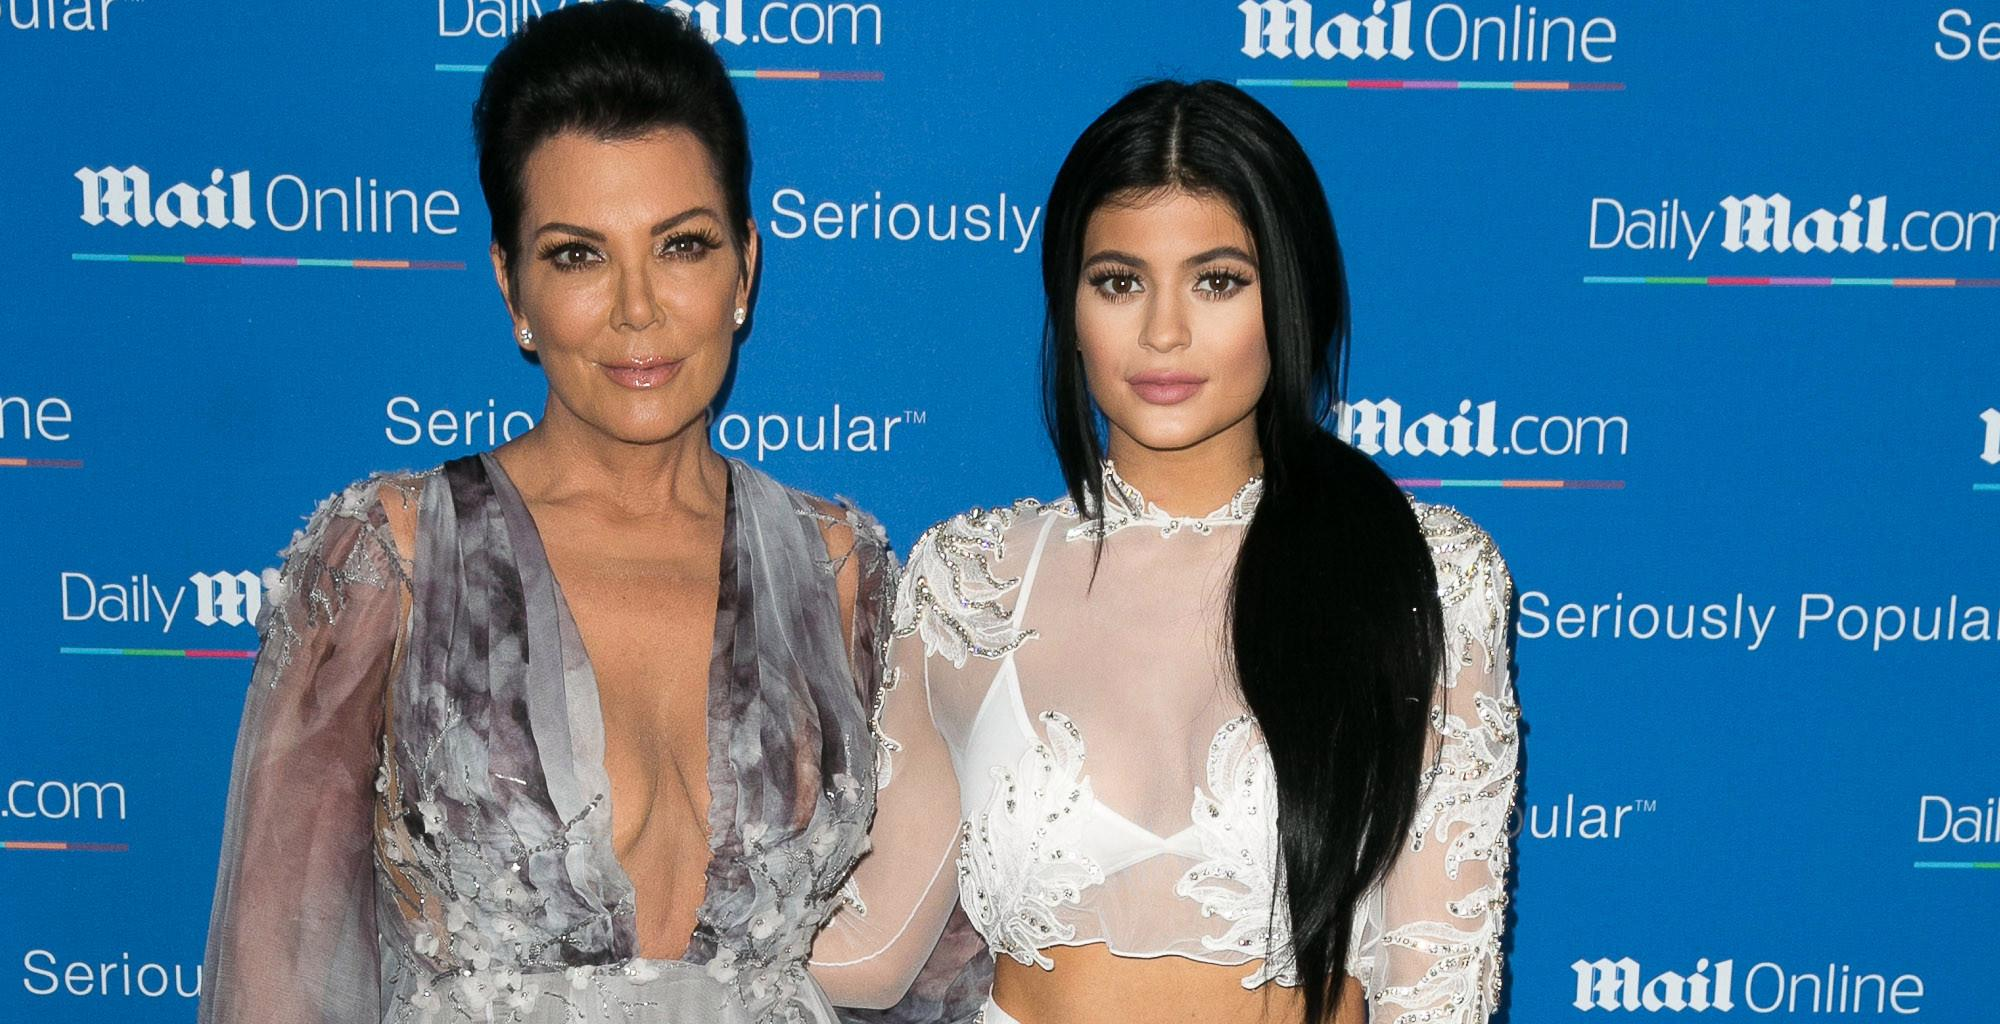 KUWK: Kris Jenner Once Again Insists Her Daughter Kylie Is Indeed A 'Self-Made' Billionaire